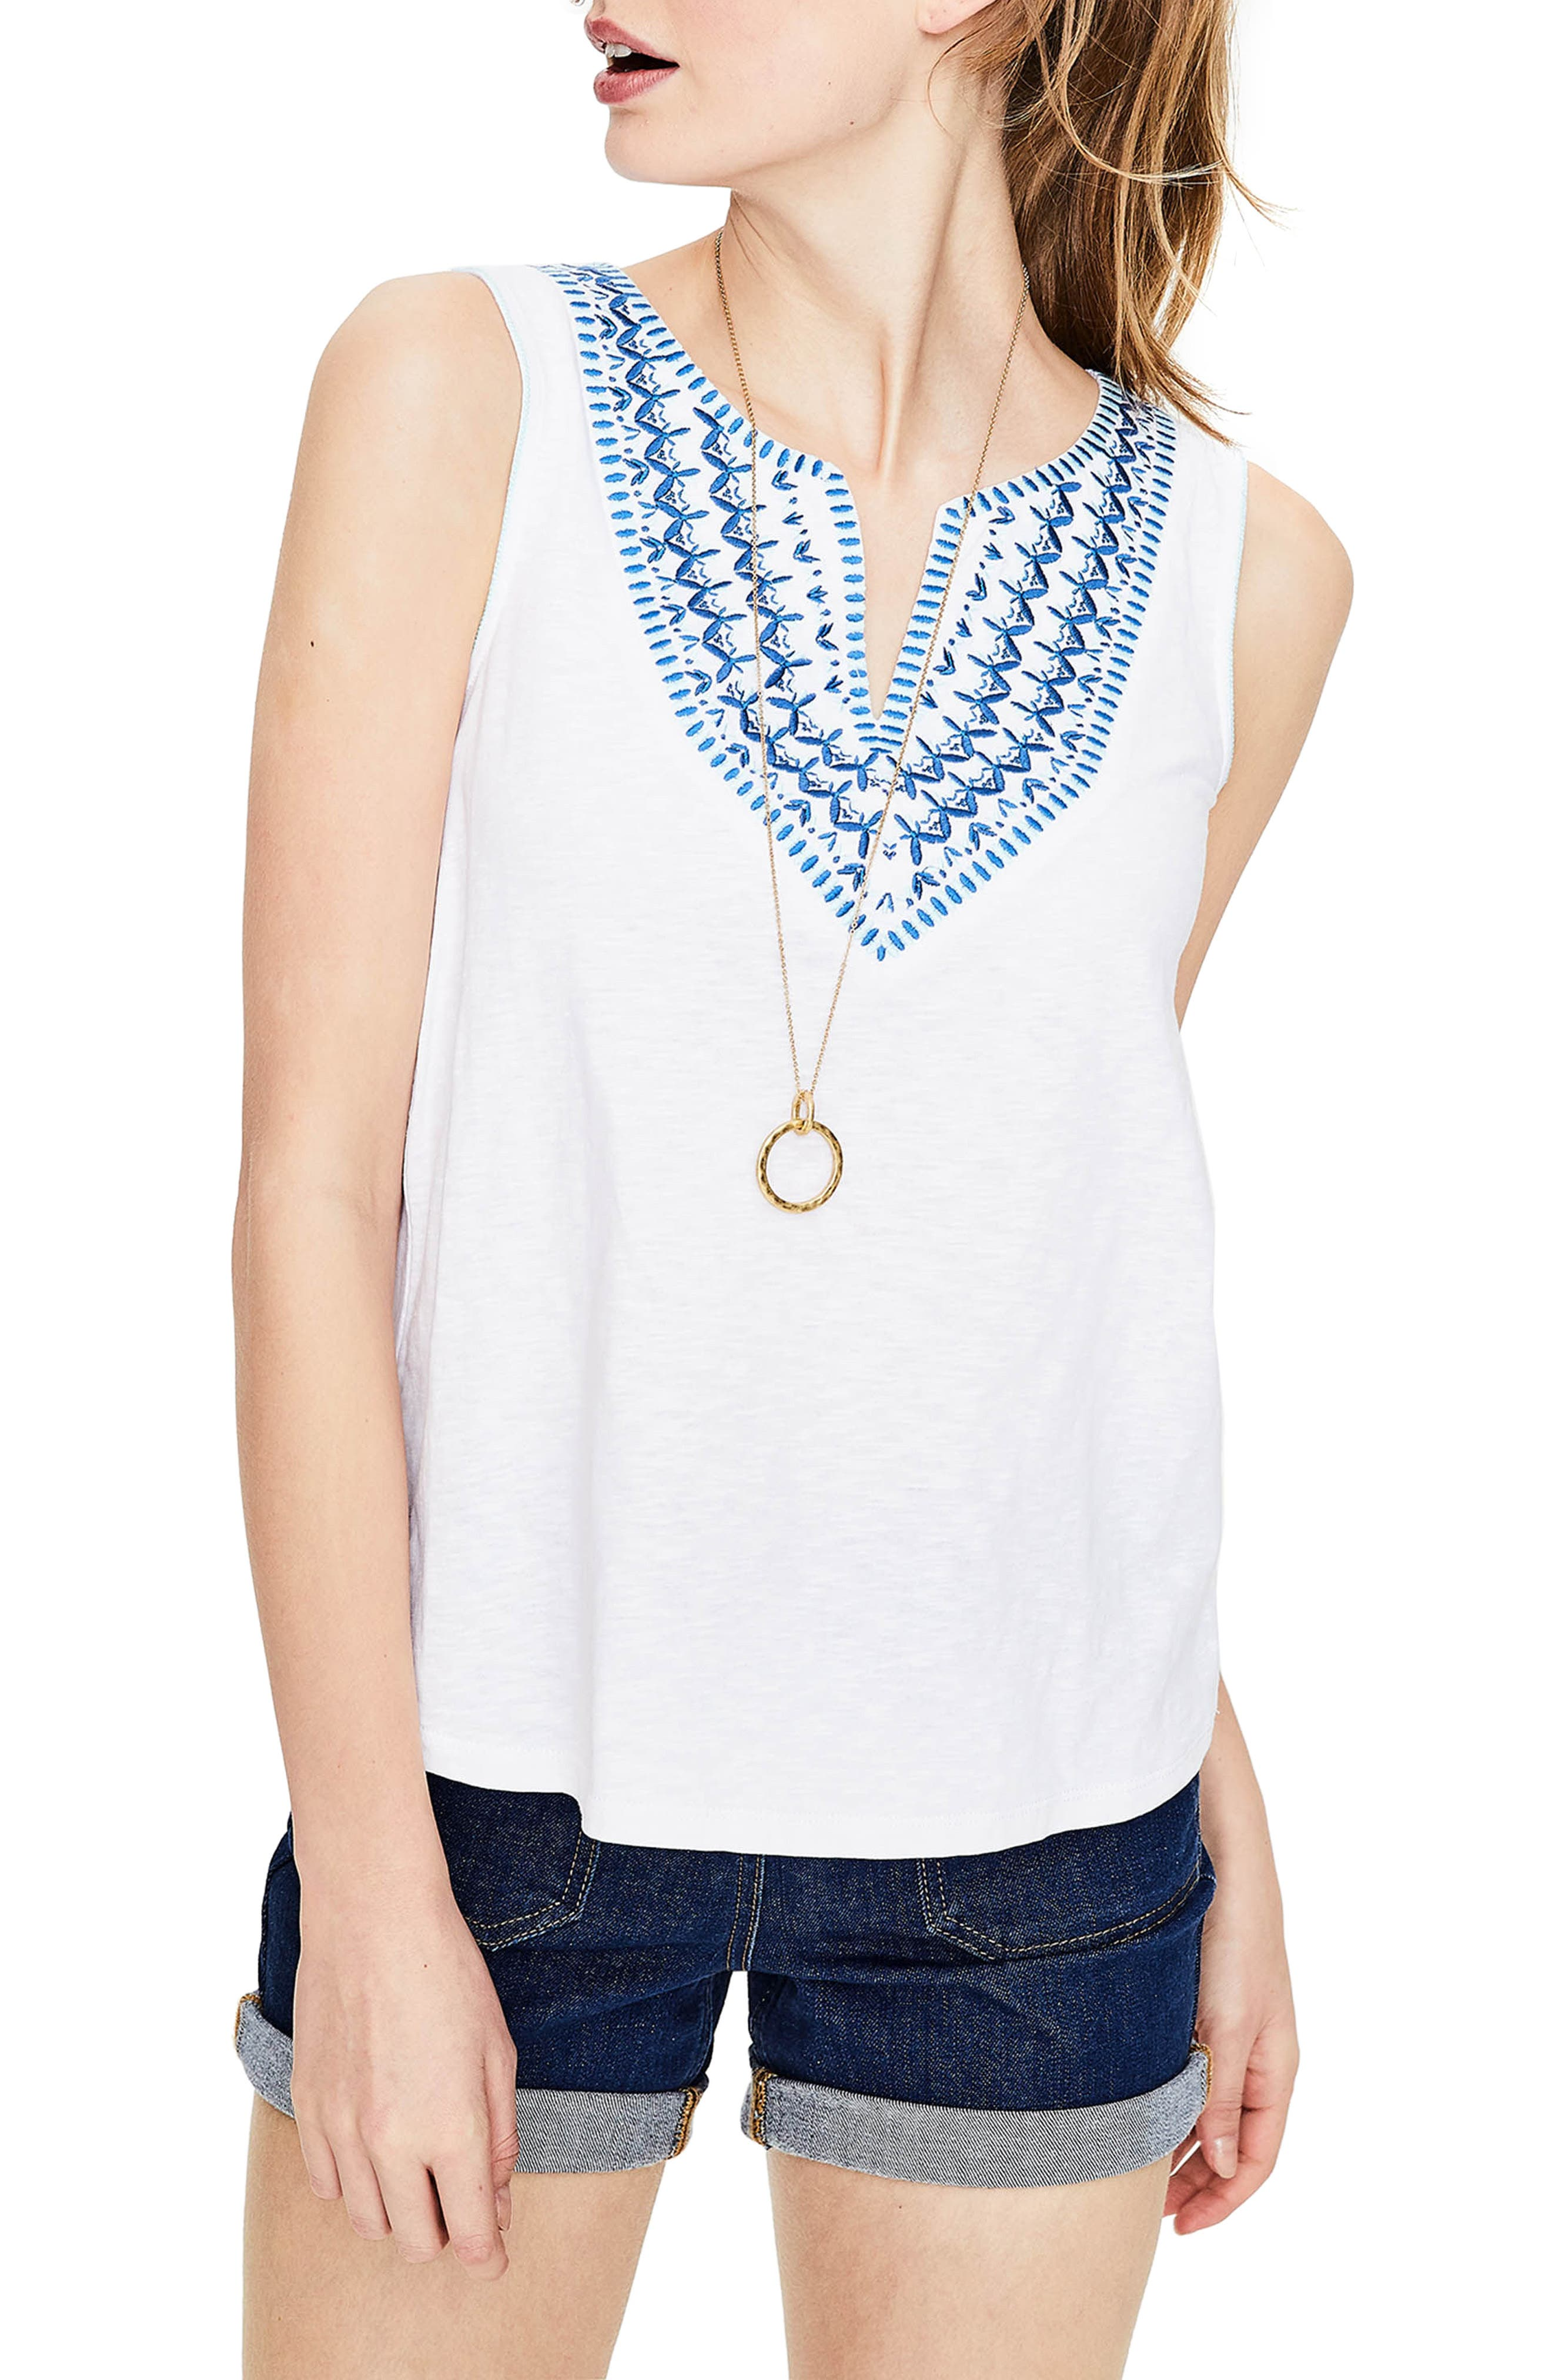 BODEN Embroidered Tank, Main, color, 100